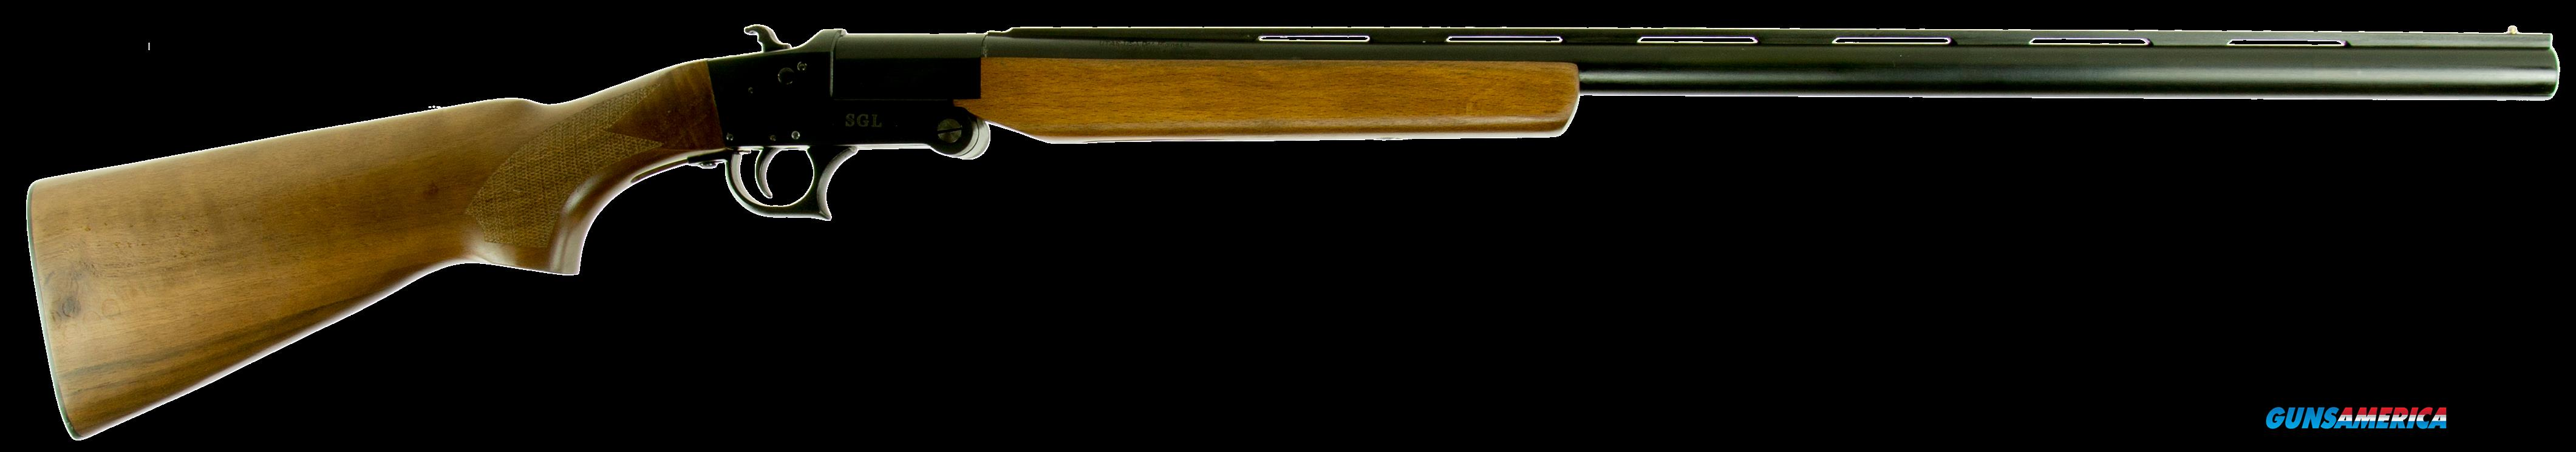 "Hatfield USH12W SLG Break Open 12 Gauge 28"" 3"" Walnut Stk Black High Gloss  Guns > Shotguns > H Misc Shotguns"